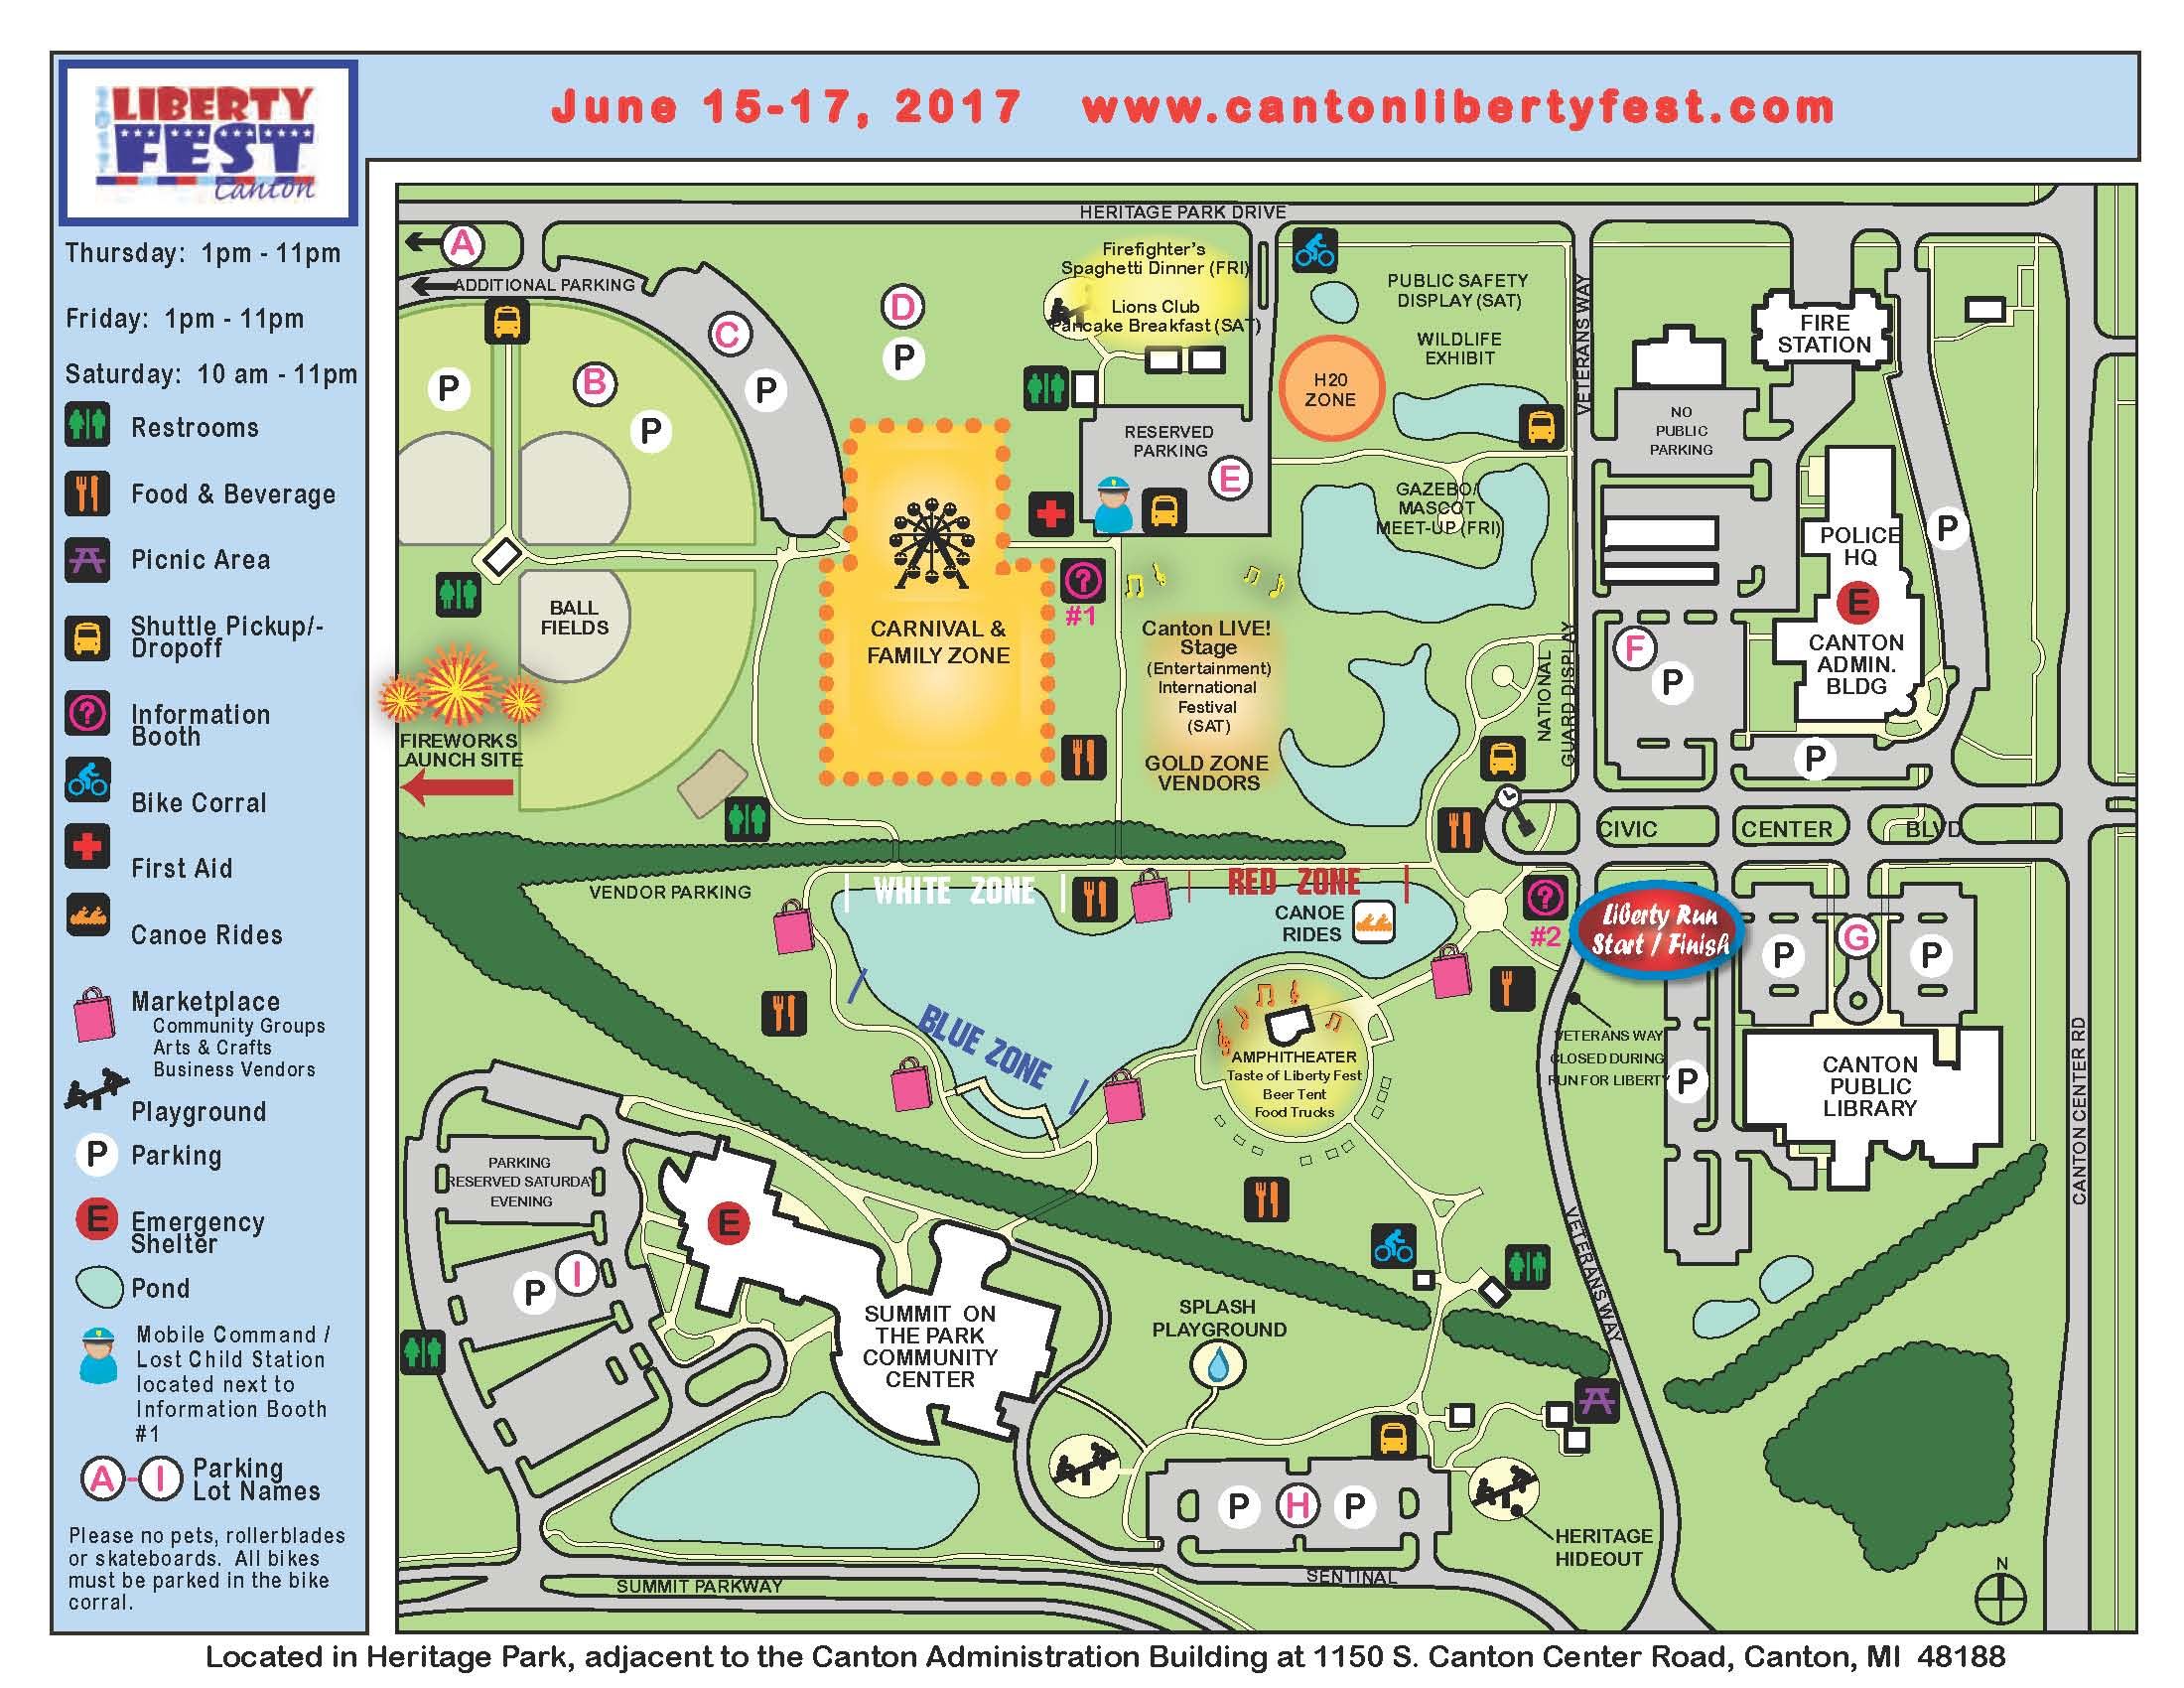 2017 Liberty Fest Grounds Map Web